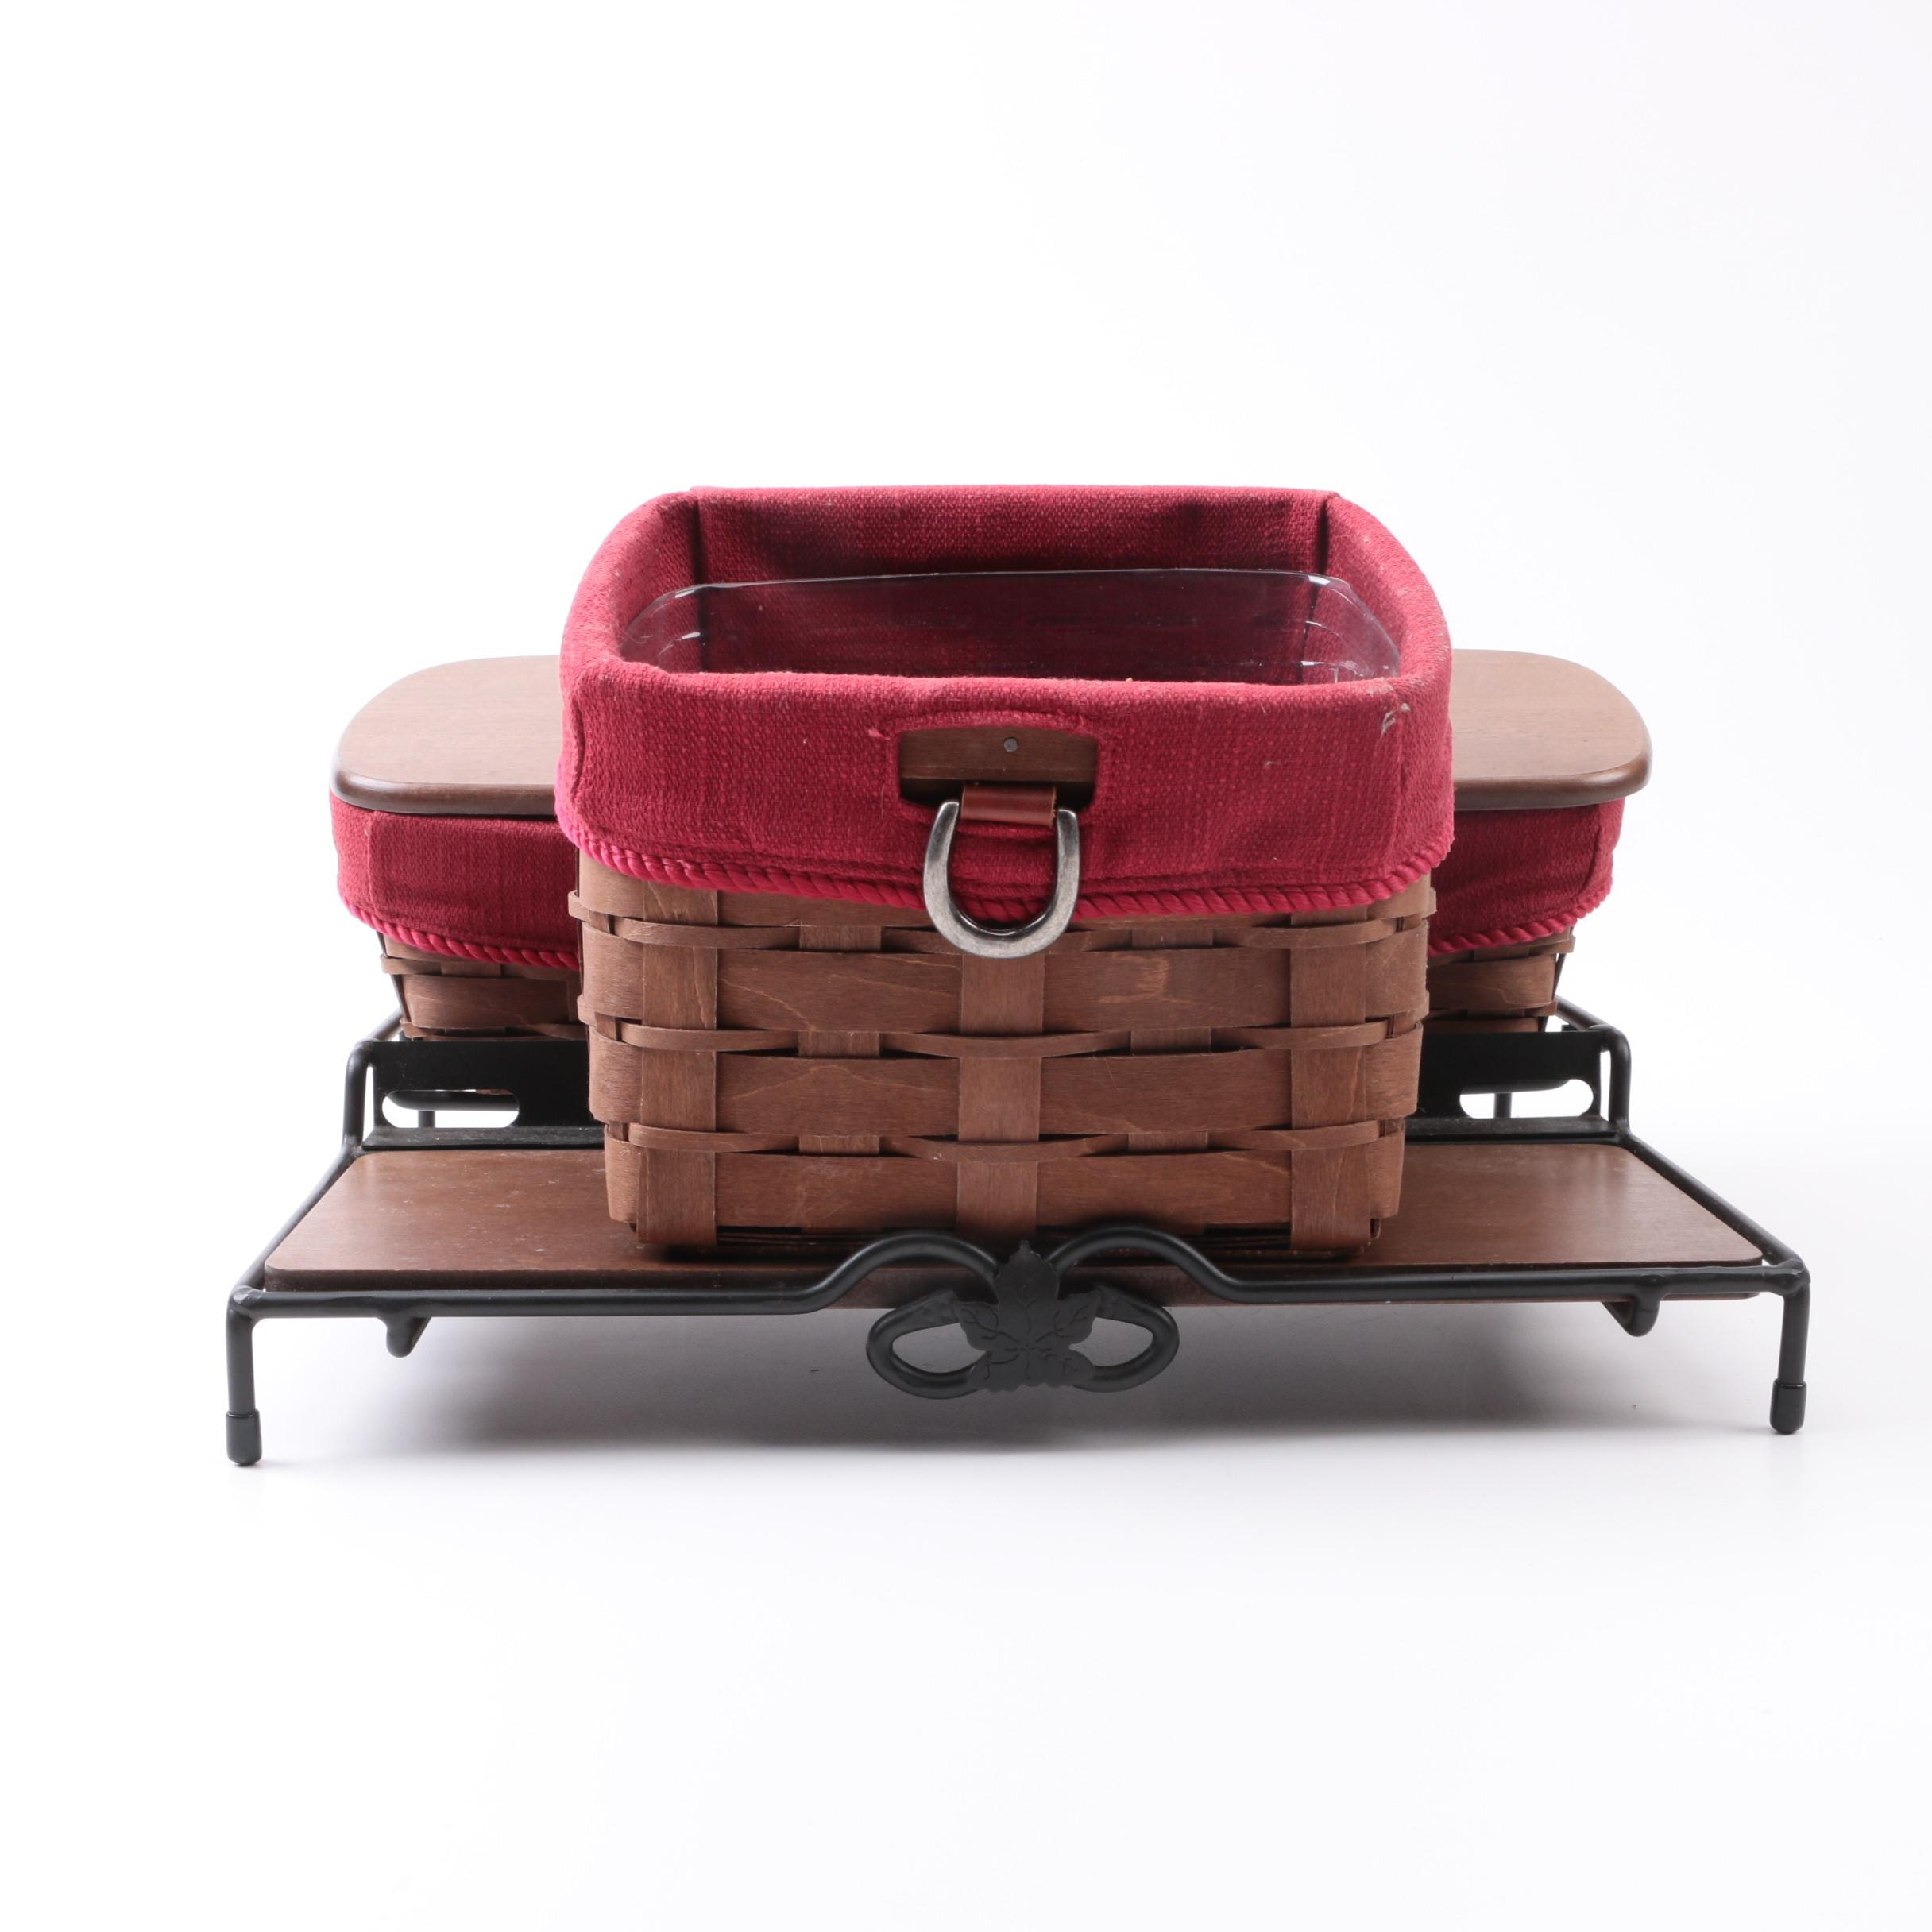 Longaberger Baskets and Stand